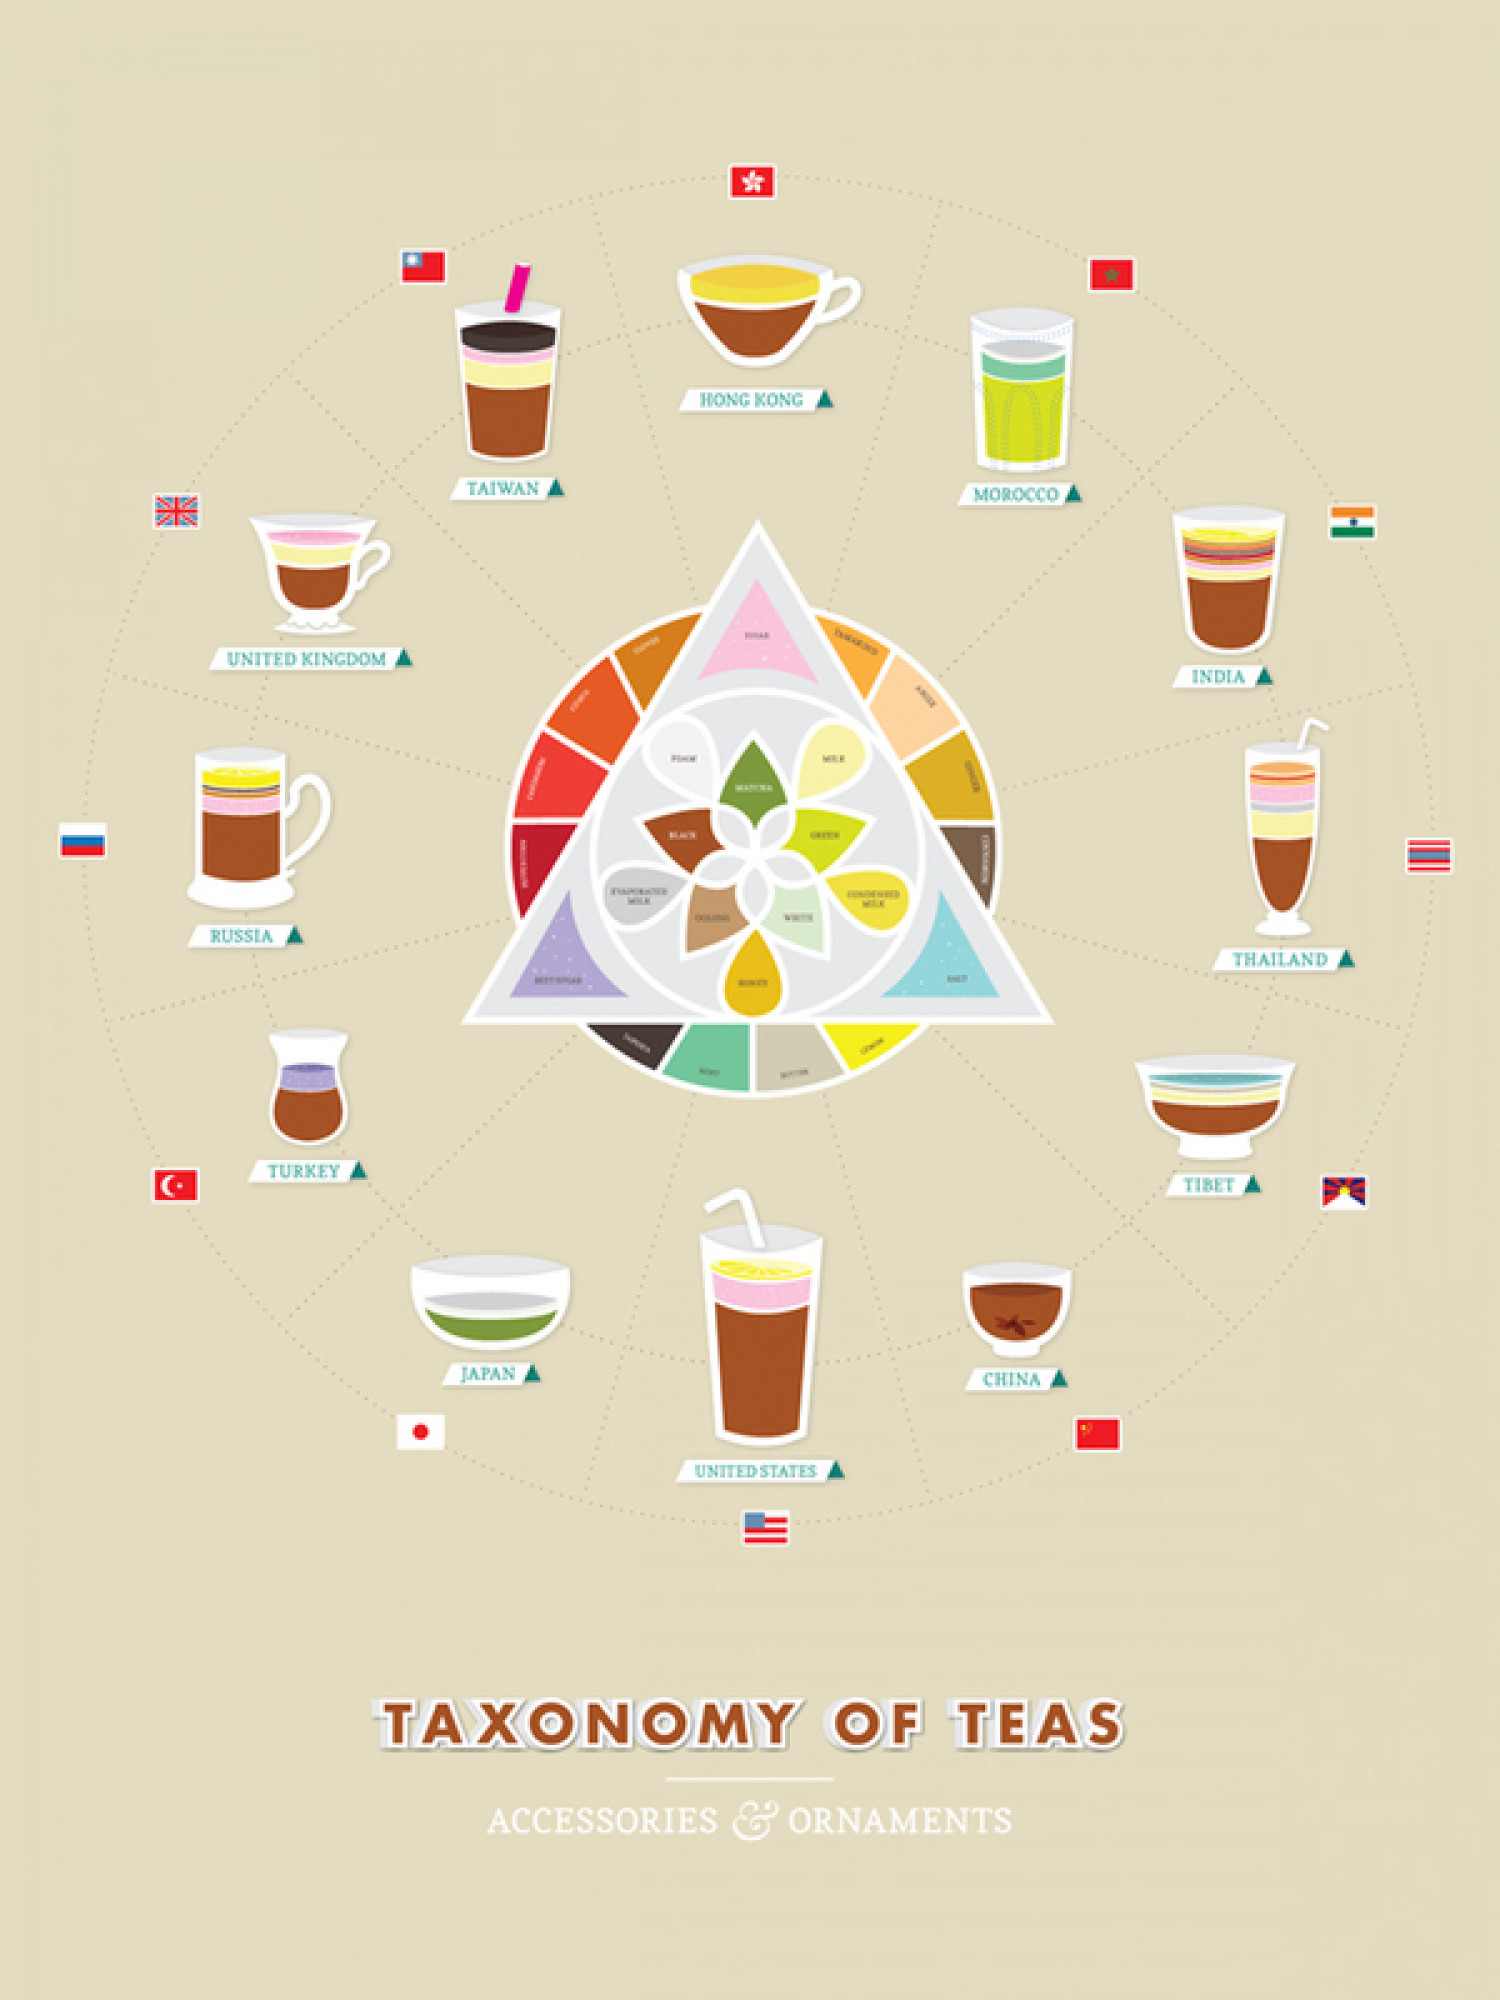 The Taxonomy of Teas Infographic